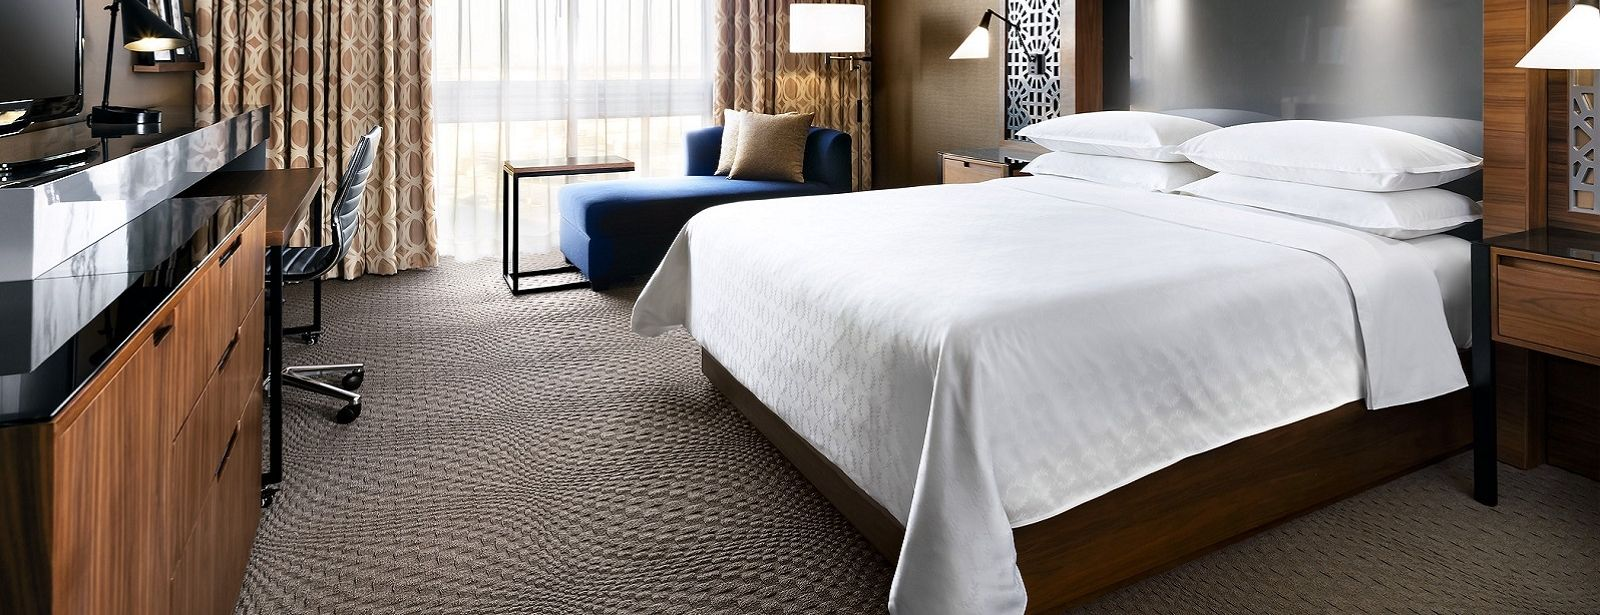 Standard King Guestroom | Sheraton Toronto Airport Hotel & Conference Center